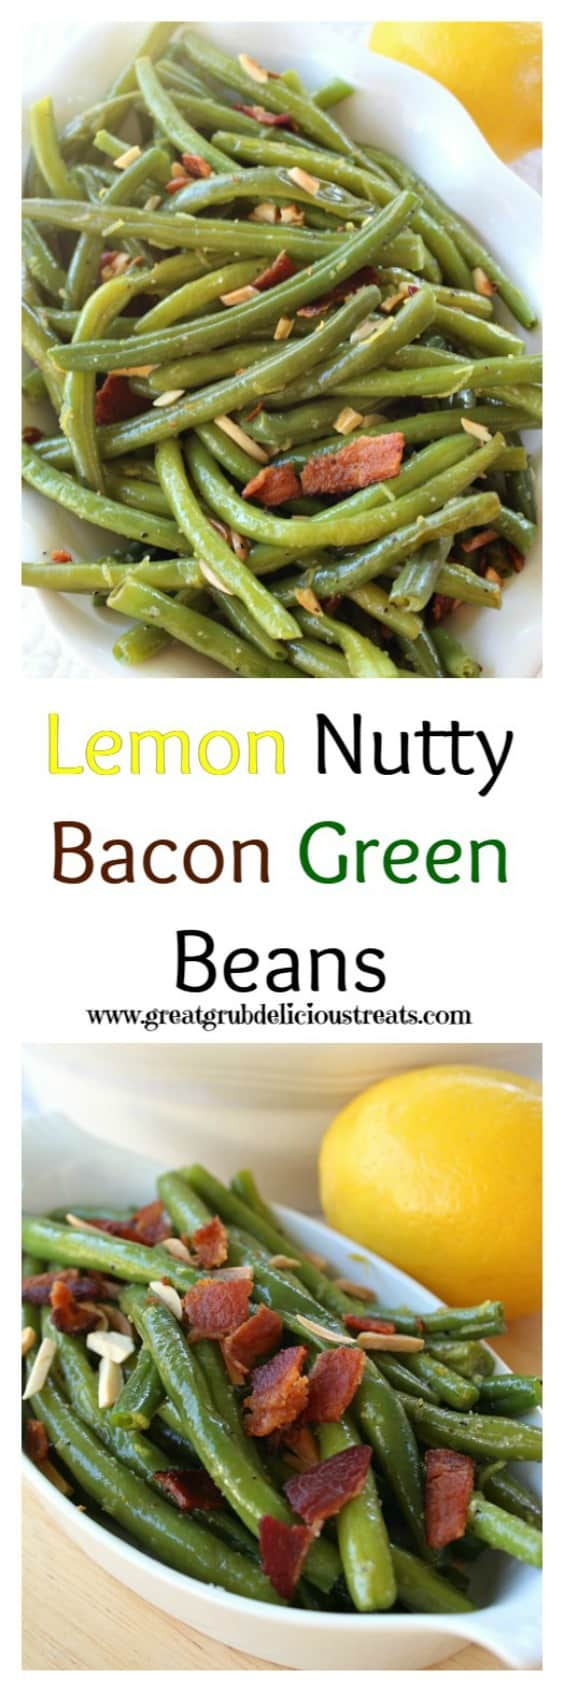 Lemon Nutty Bacon Green Beans.